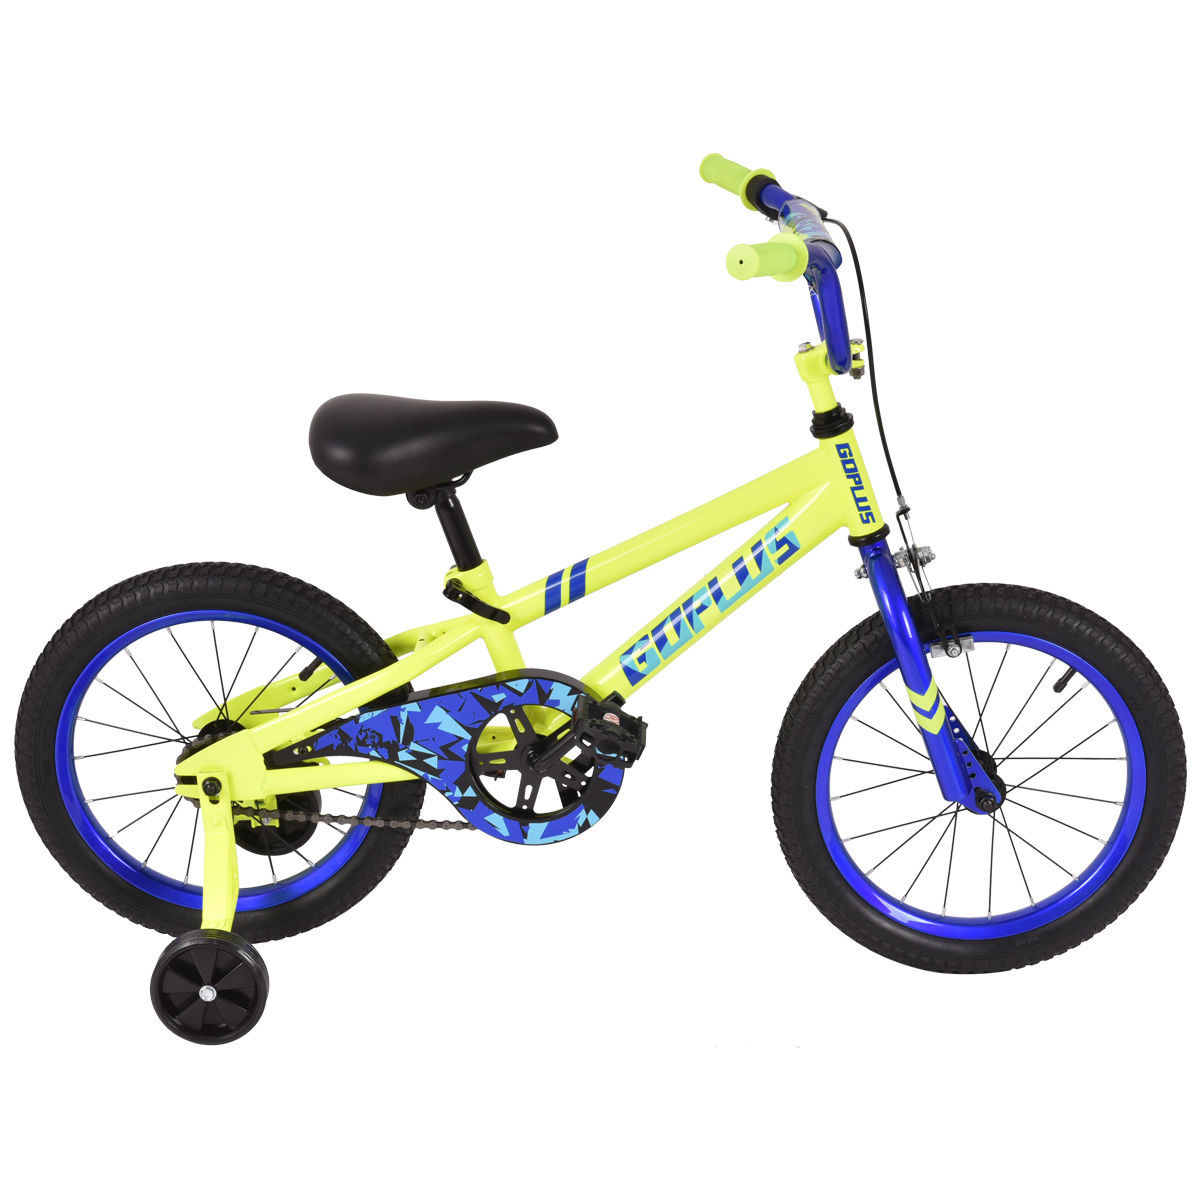 Costway 16'' Children Kids Bike Boy Girl Bicycle Training Wheels Toddler Ride Yellow by Costway